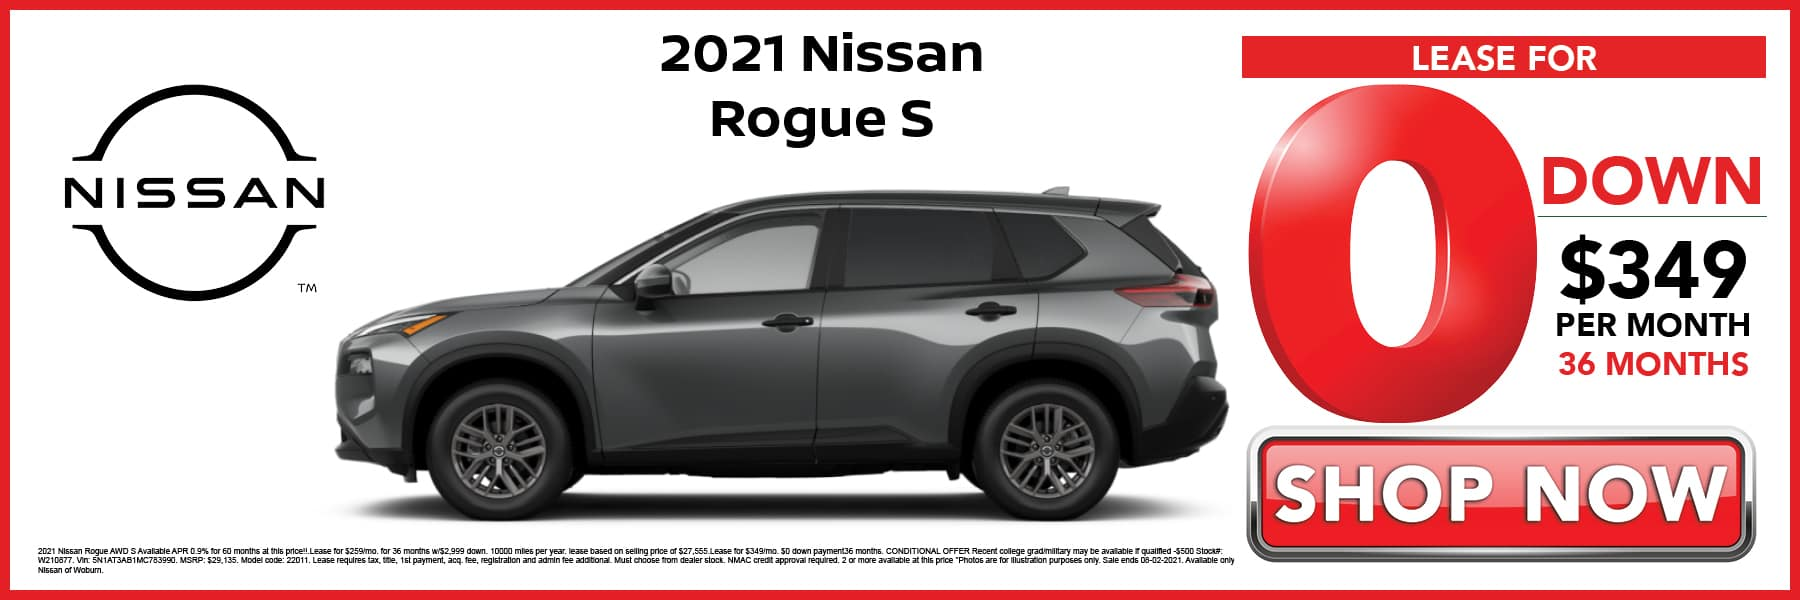 2021 Nissan Rogue S Lease for 0 Down then $349 per Month for 26 Months